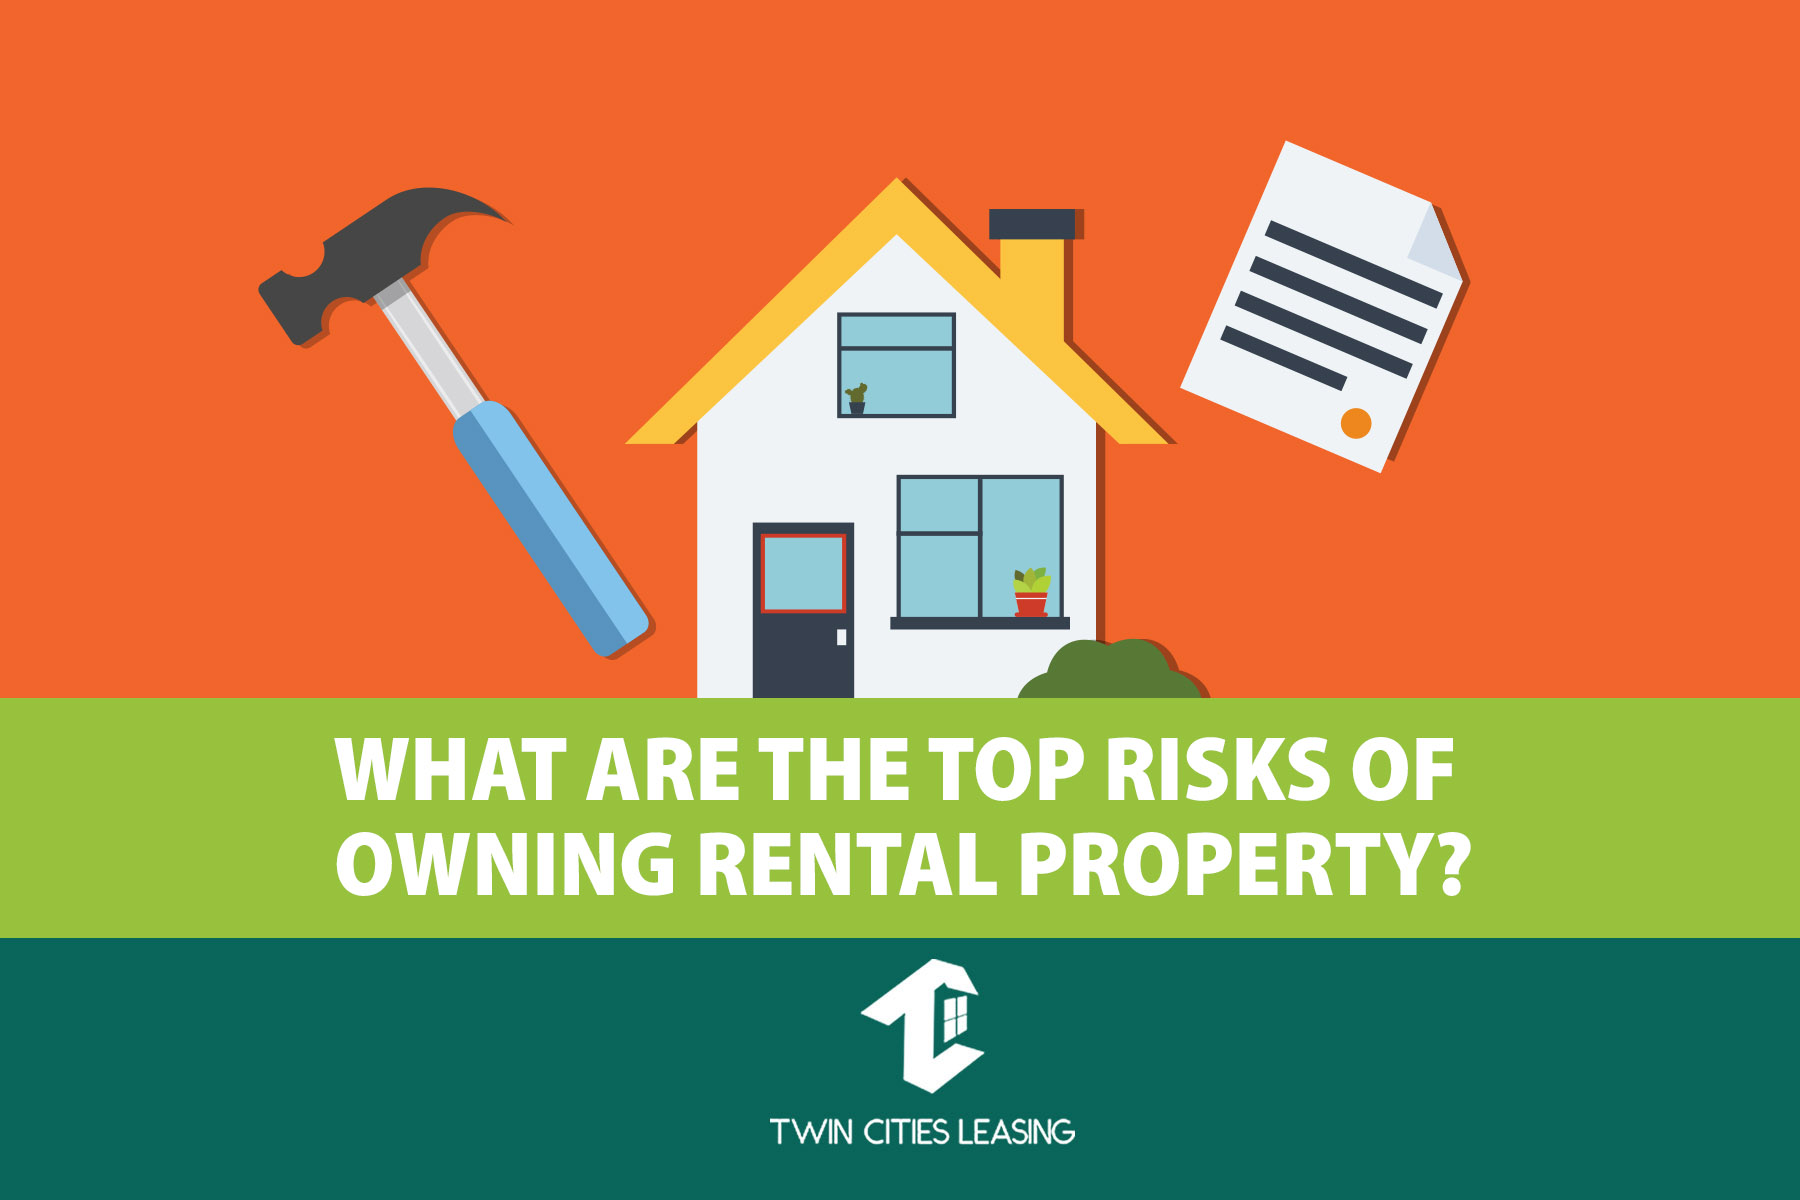 Top Risks of Owning Rental Property